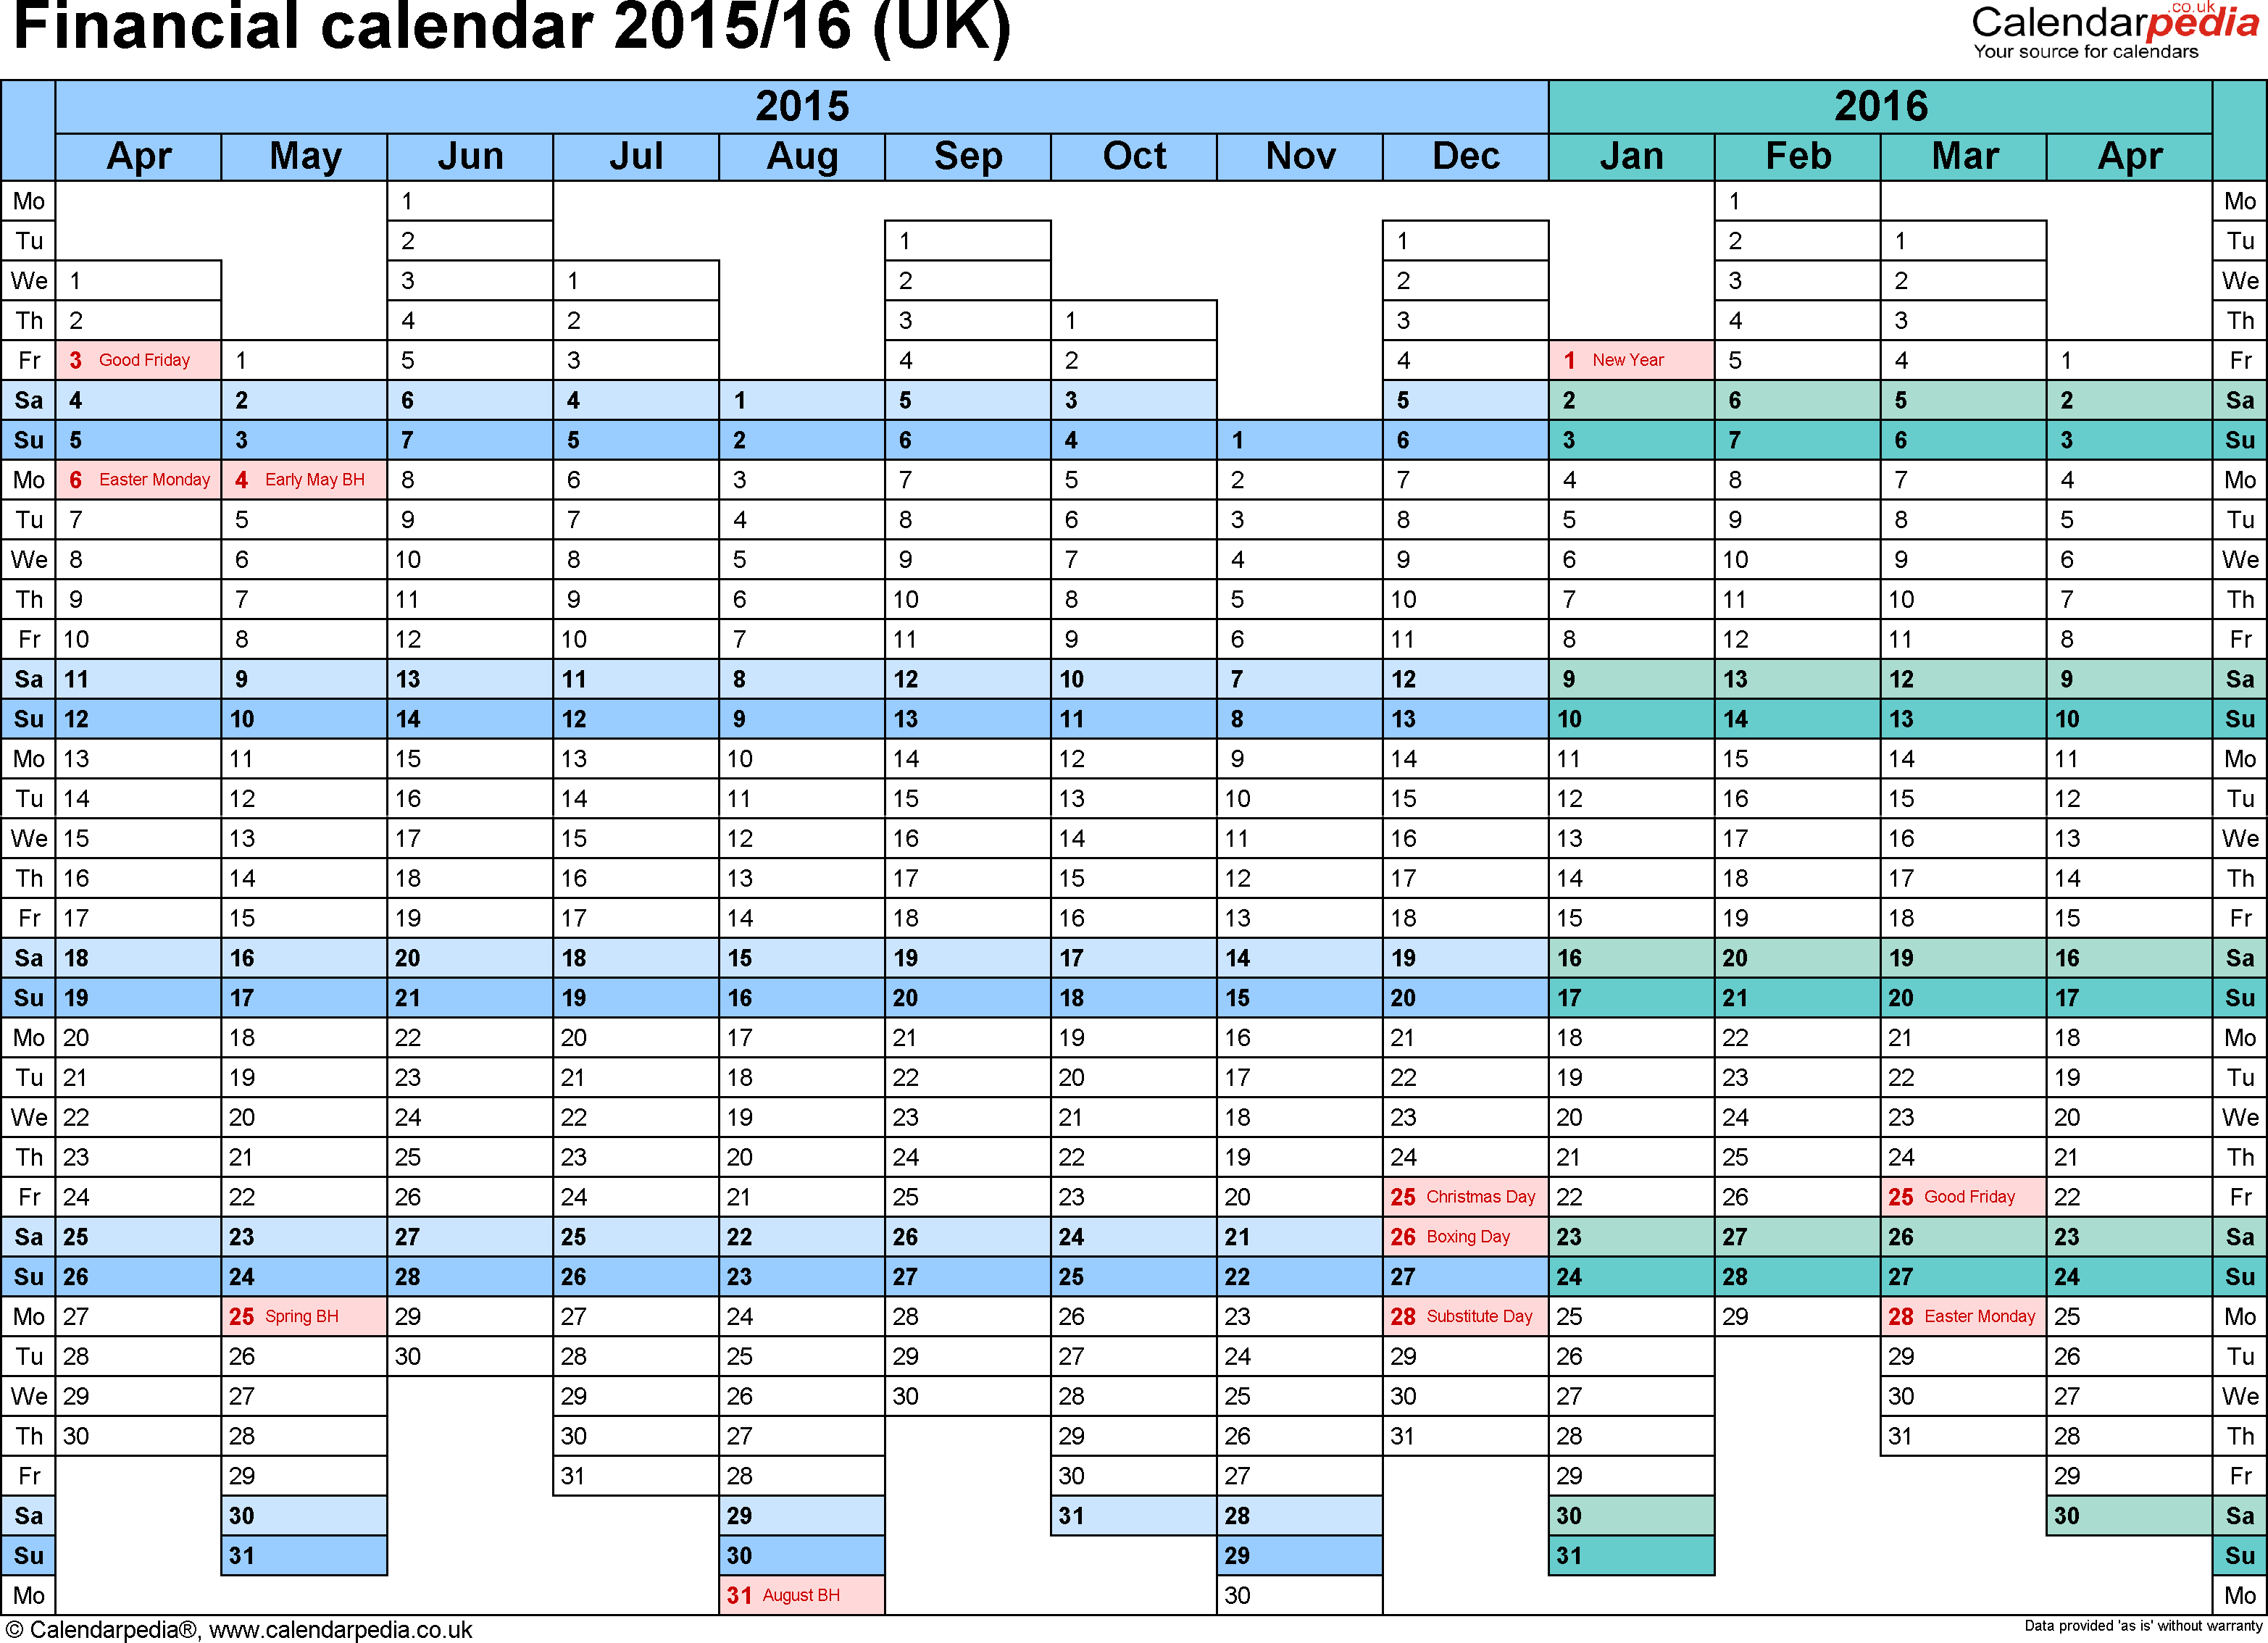 Download Template 2: PDF template for financial calendar 2015/2016, landscape orientation, 1 page, A4, days aligned